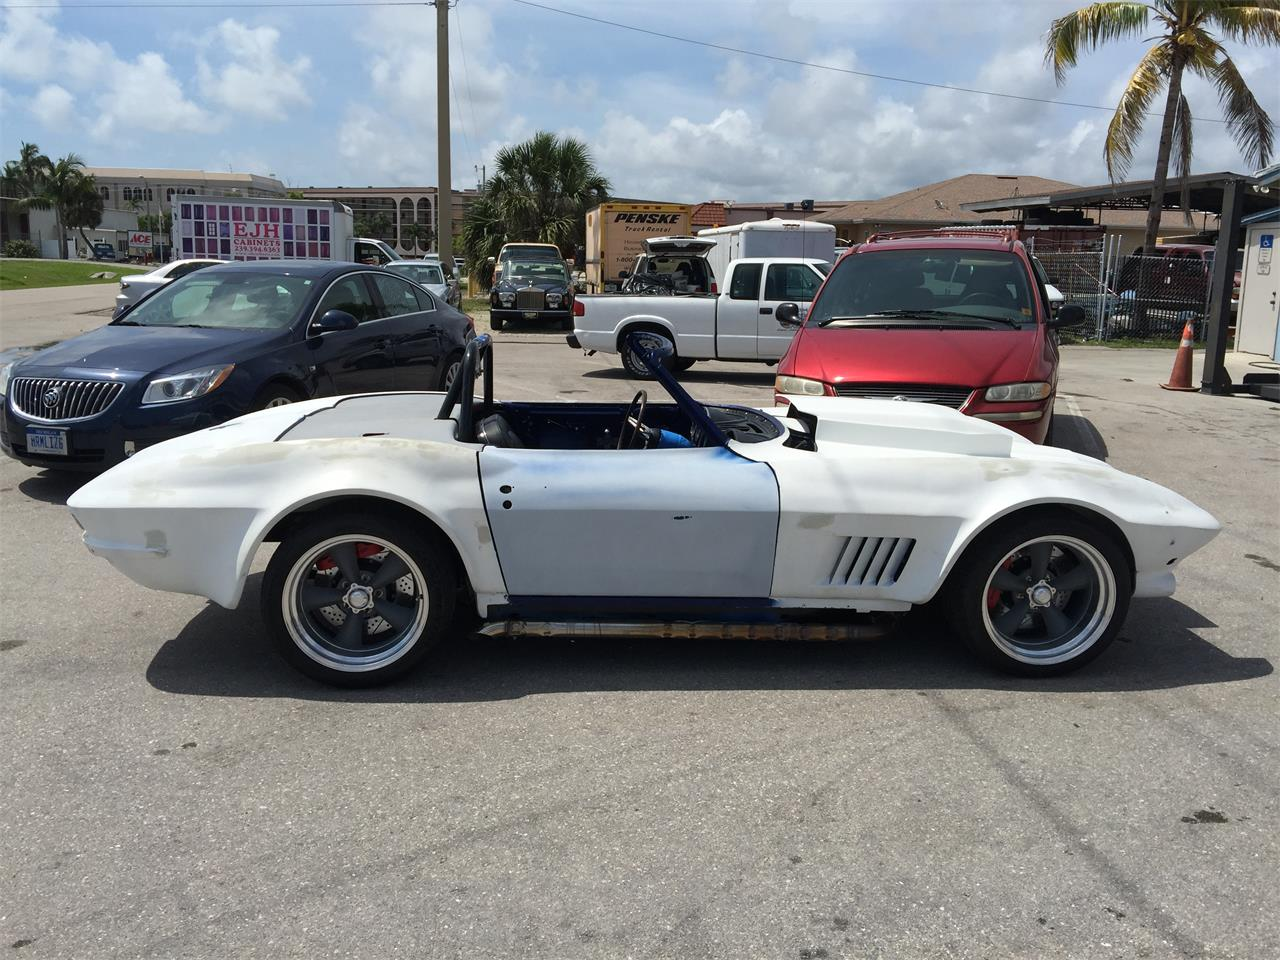 1967 Chevrolet Corvette (CC-1297639) for sale in MARCO ISLAND, USA